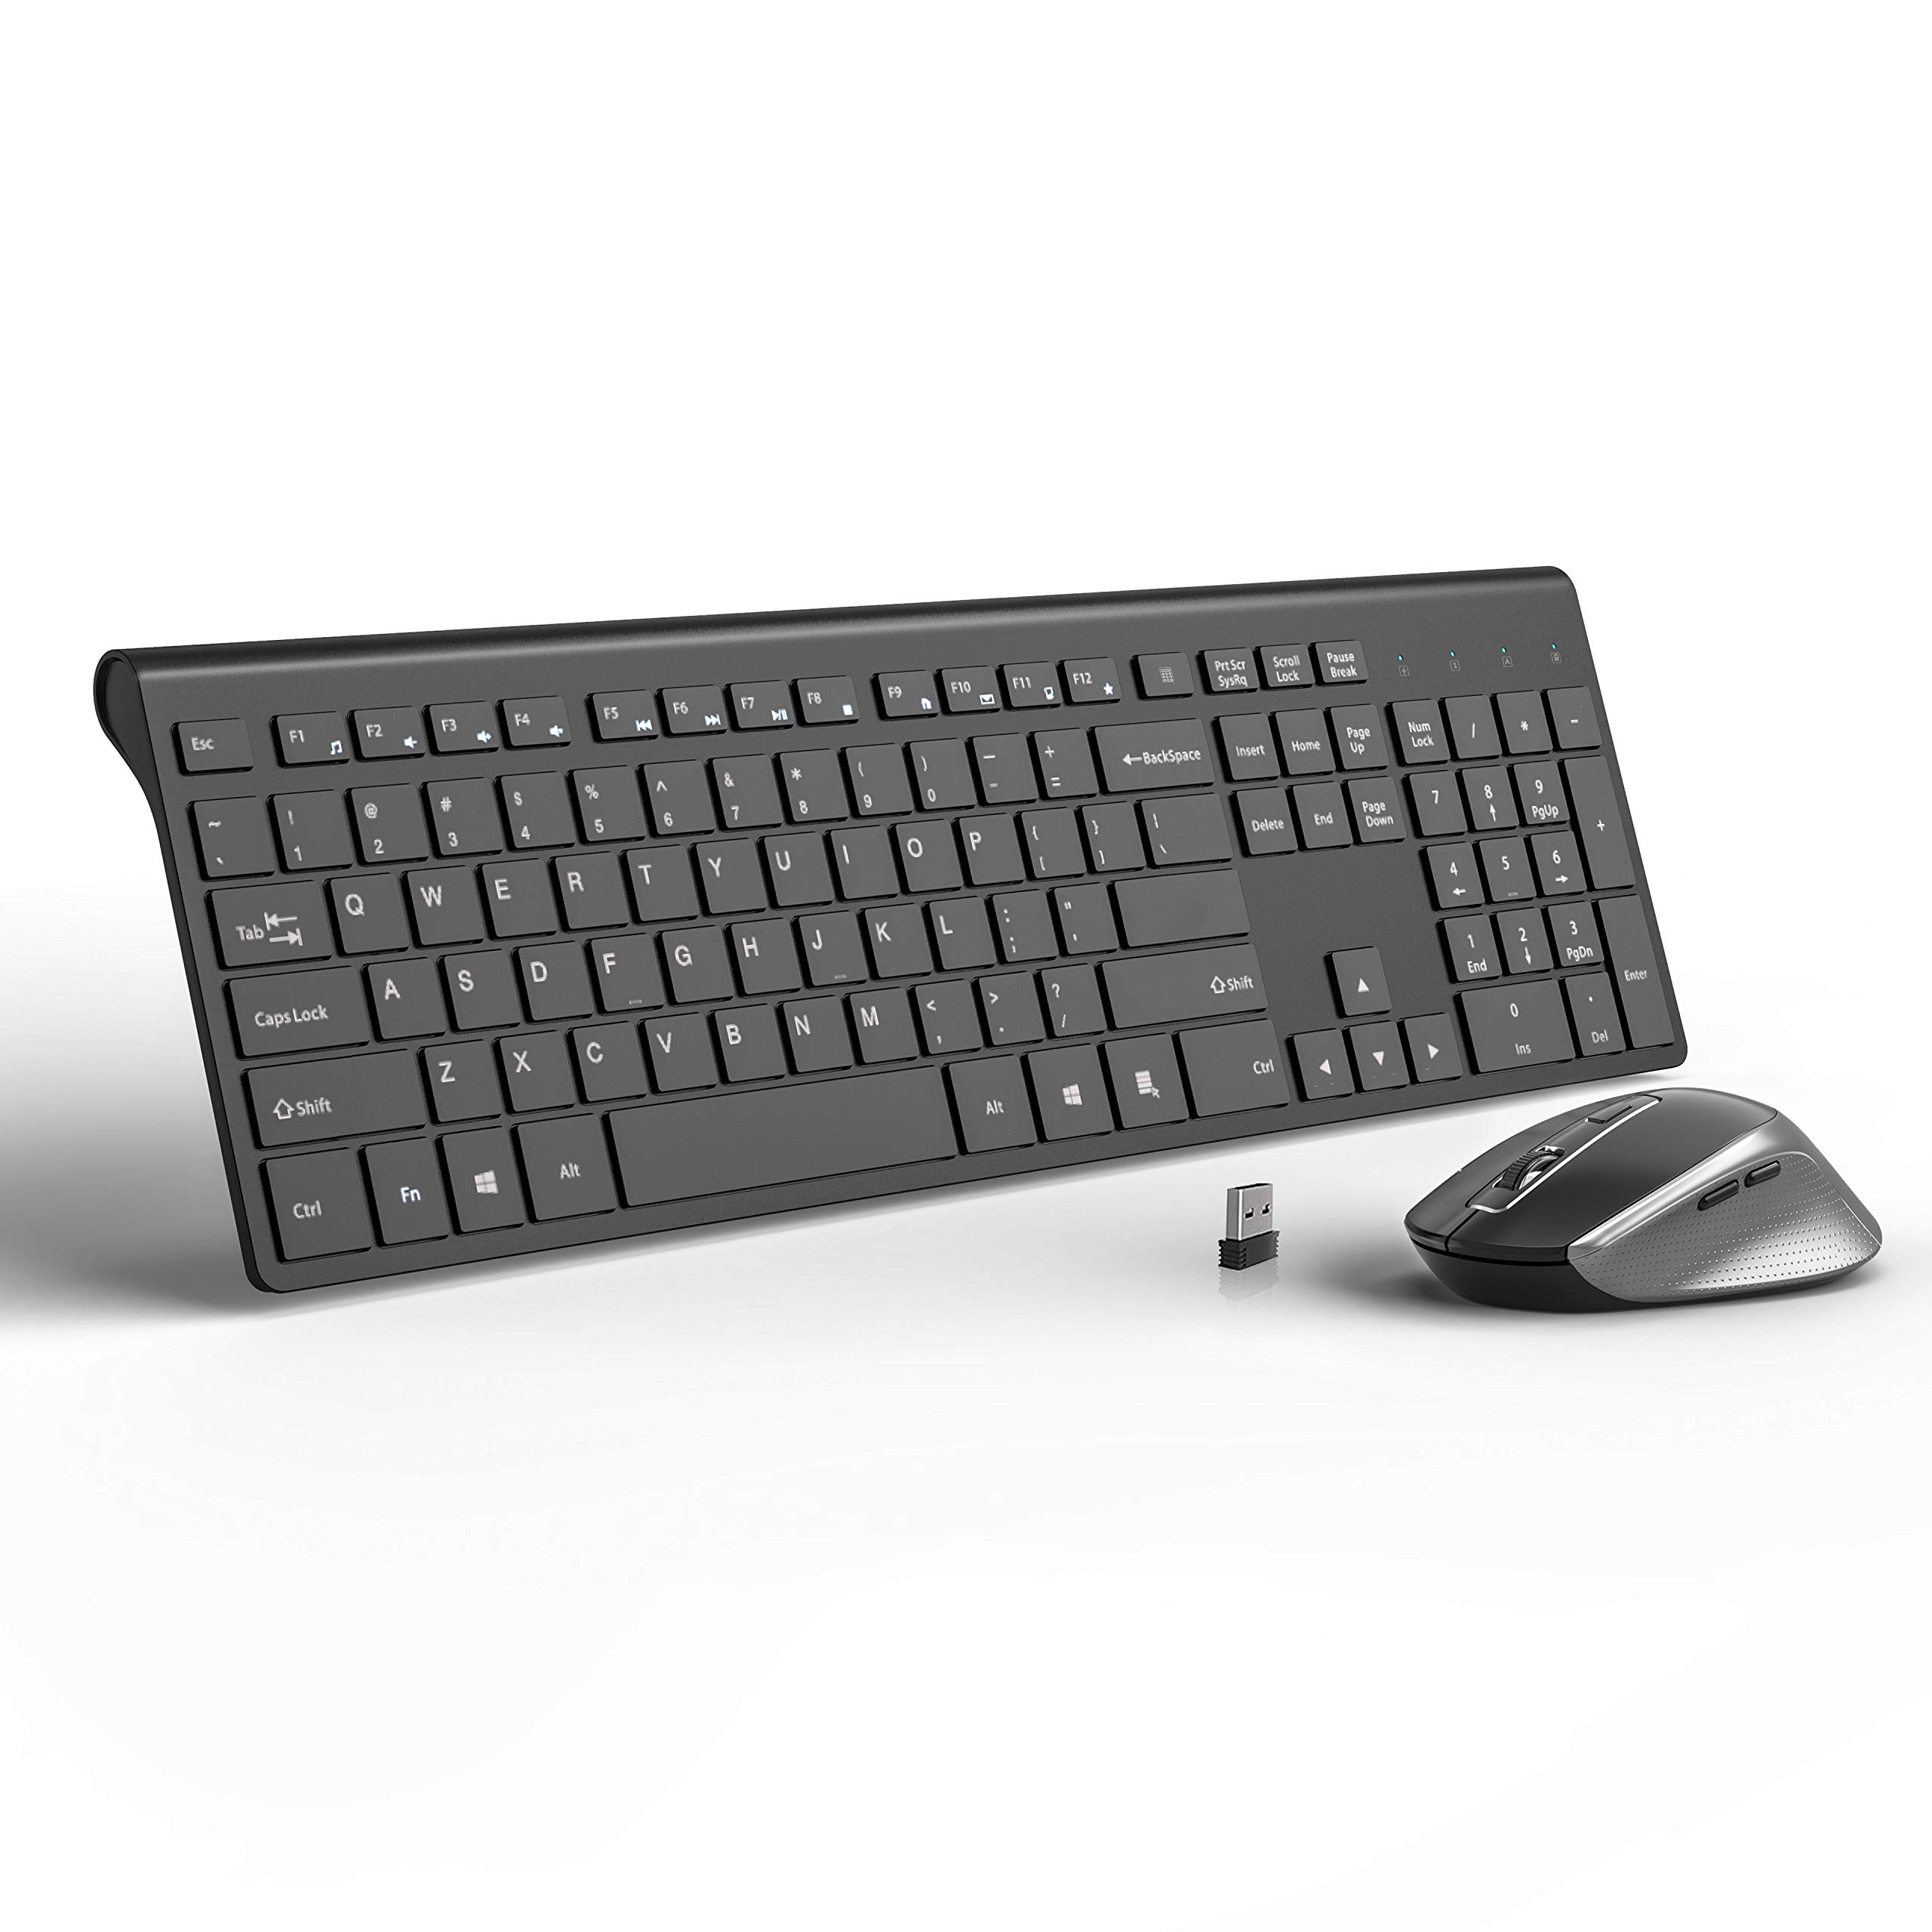 Wireless Keyboard and Mouse Combo,2.4G Ultra Slim Full Size Ergonomic Rechargeable Keyboard and Slient Cordless Mouse with Side Buttons for Mac,Windows,Laptop,Desktop - Black and Grey